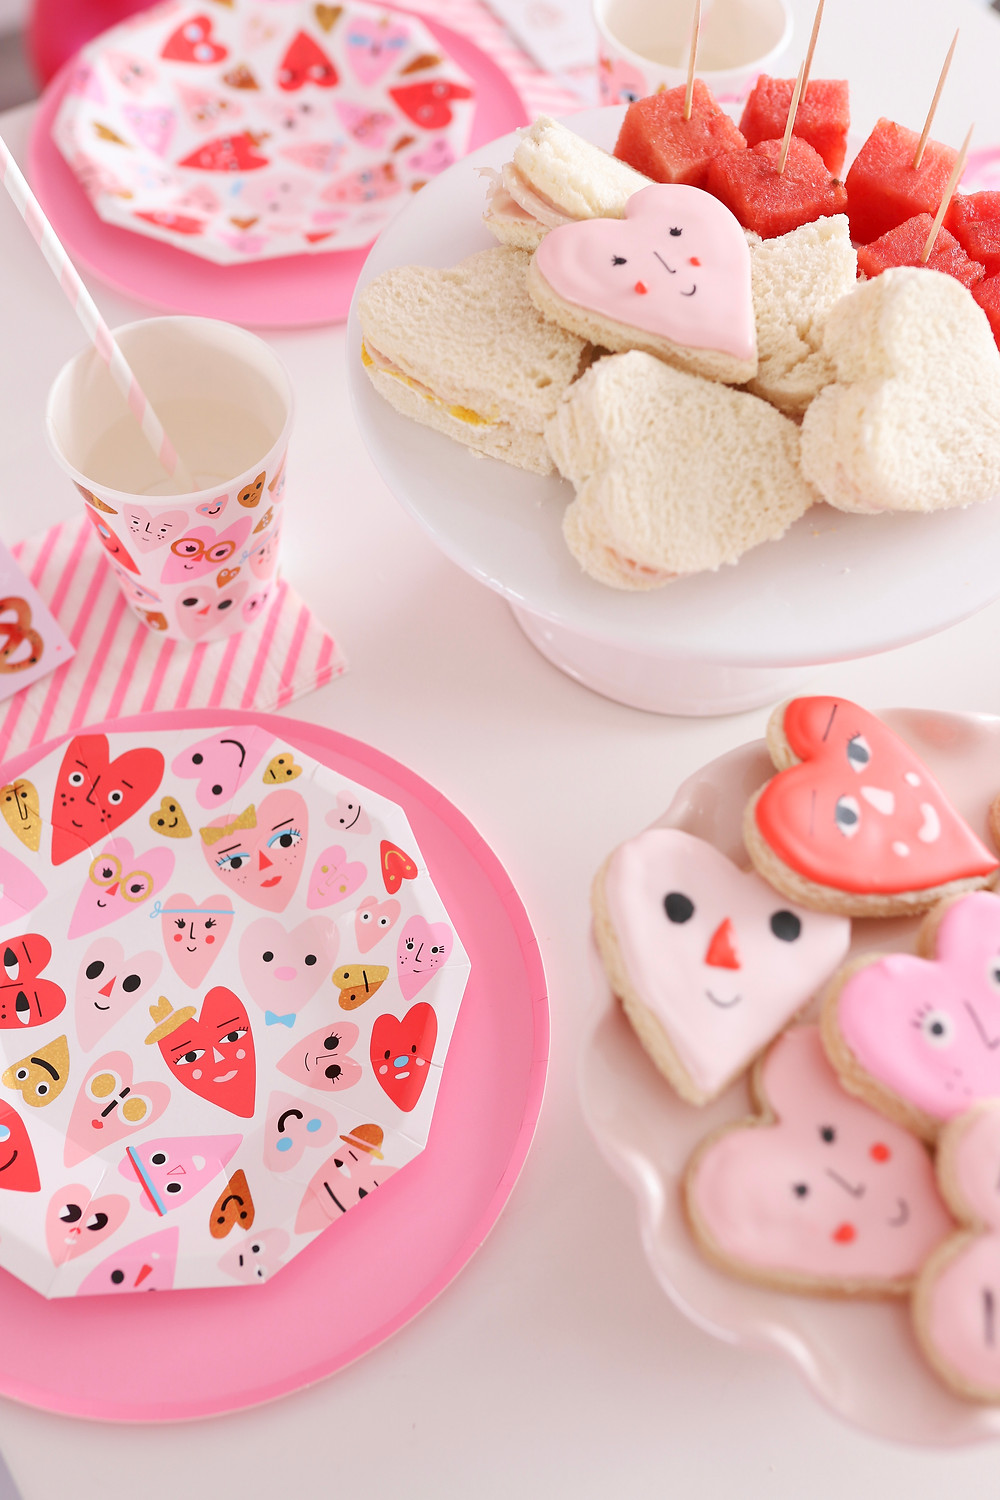 Valentines Day cookies, snacks and plates on a table.